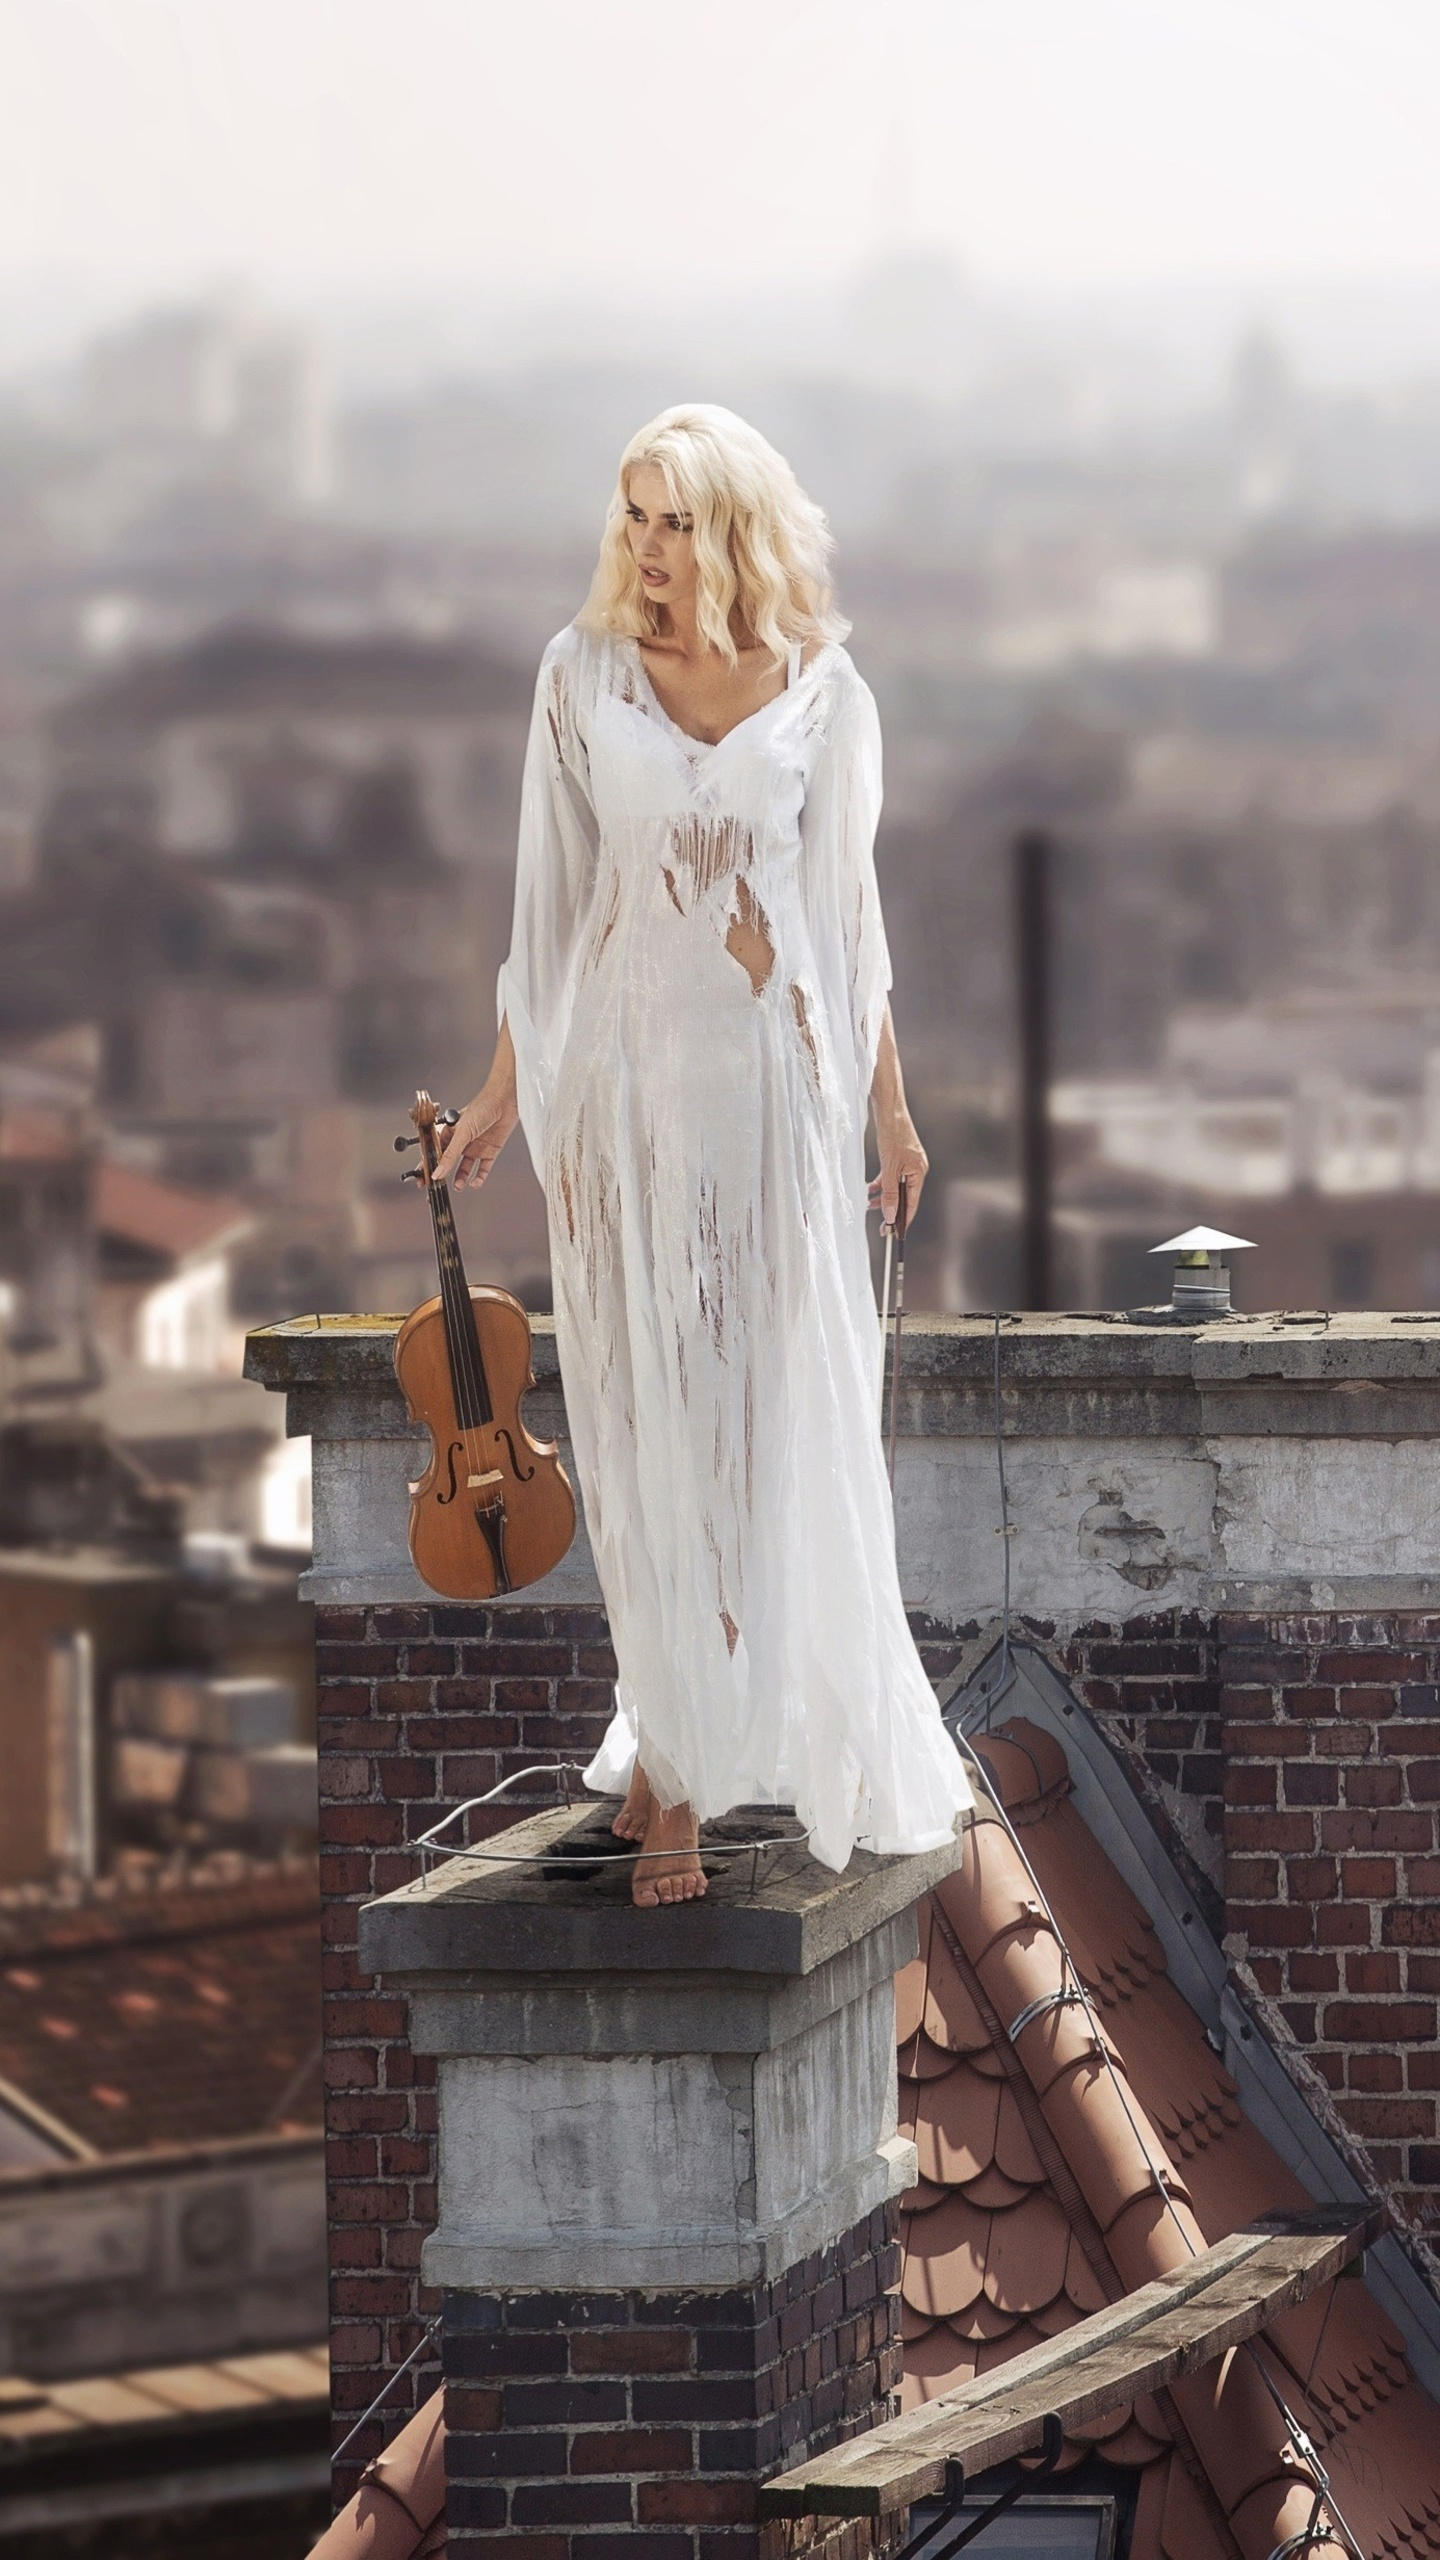 women-with-violin-standing-on-roof-4k-1v.jpg